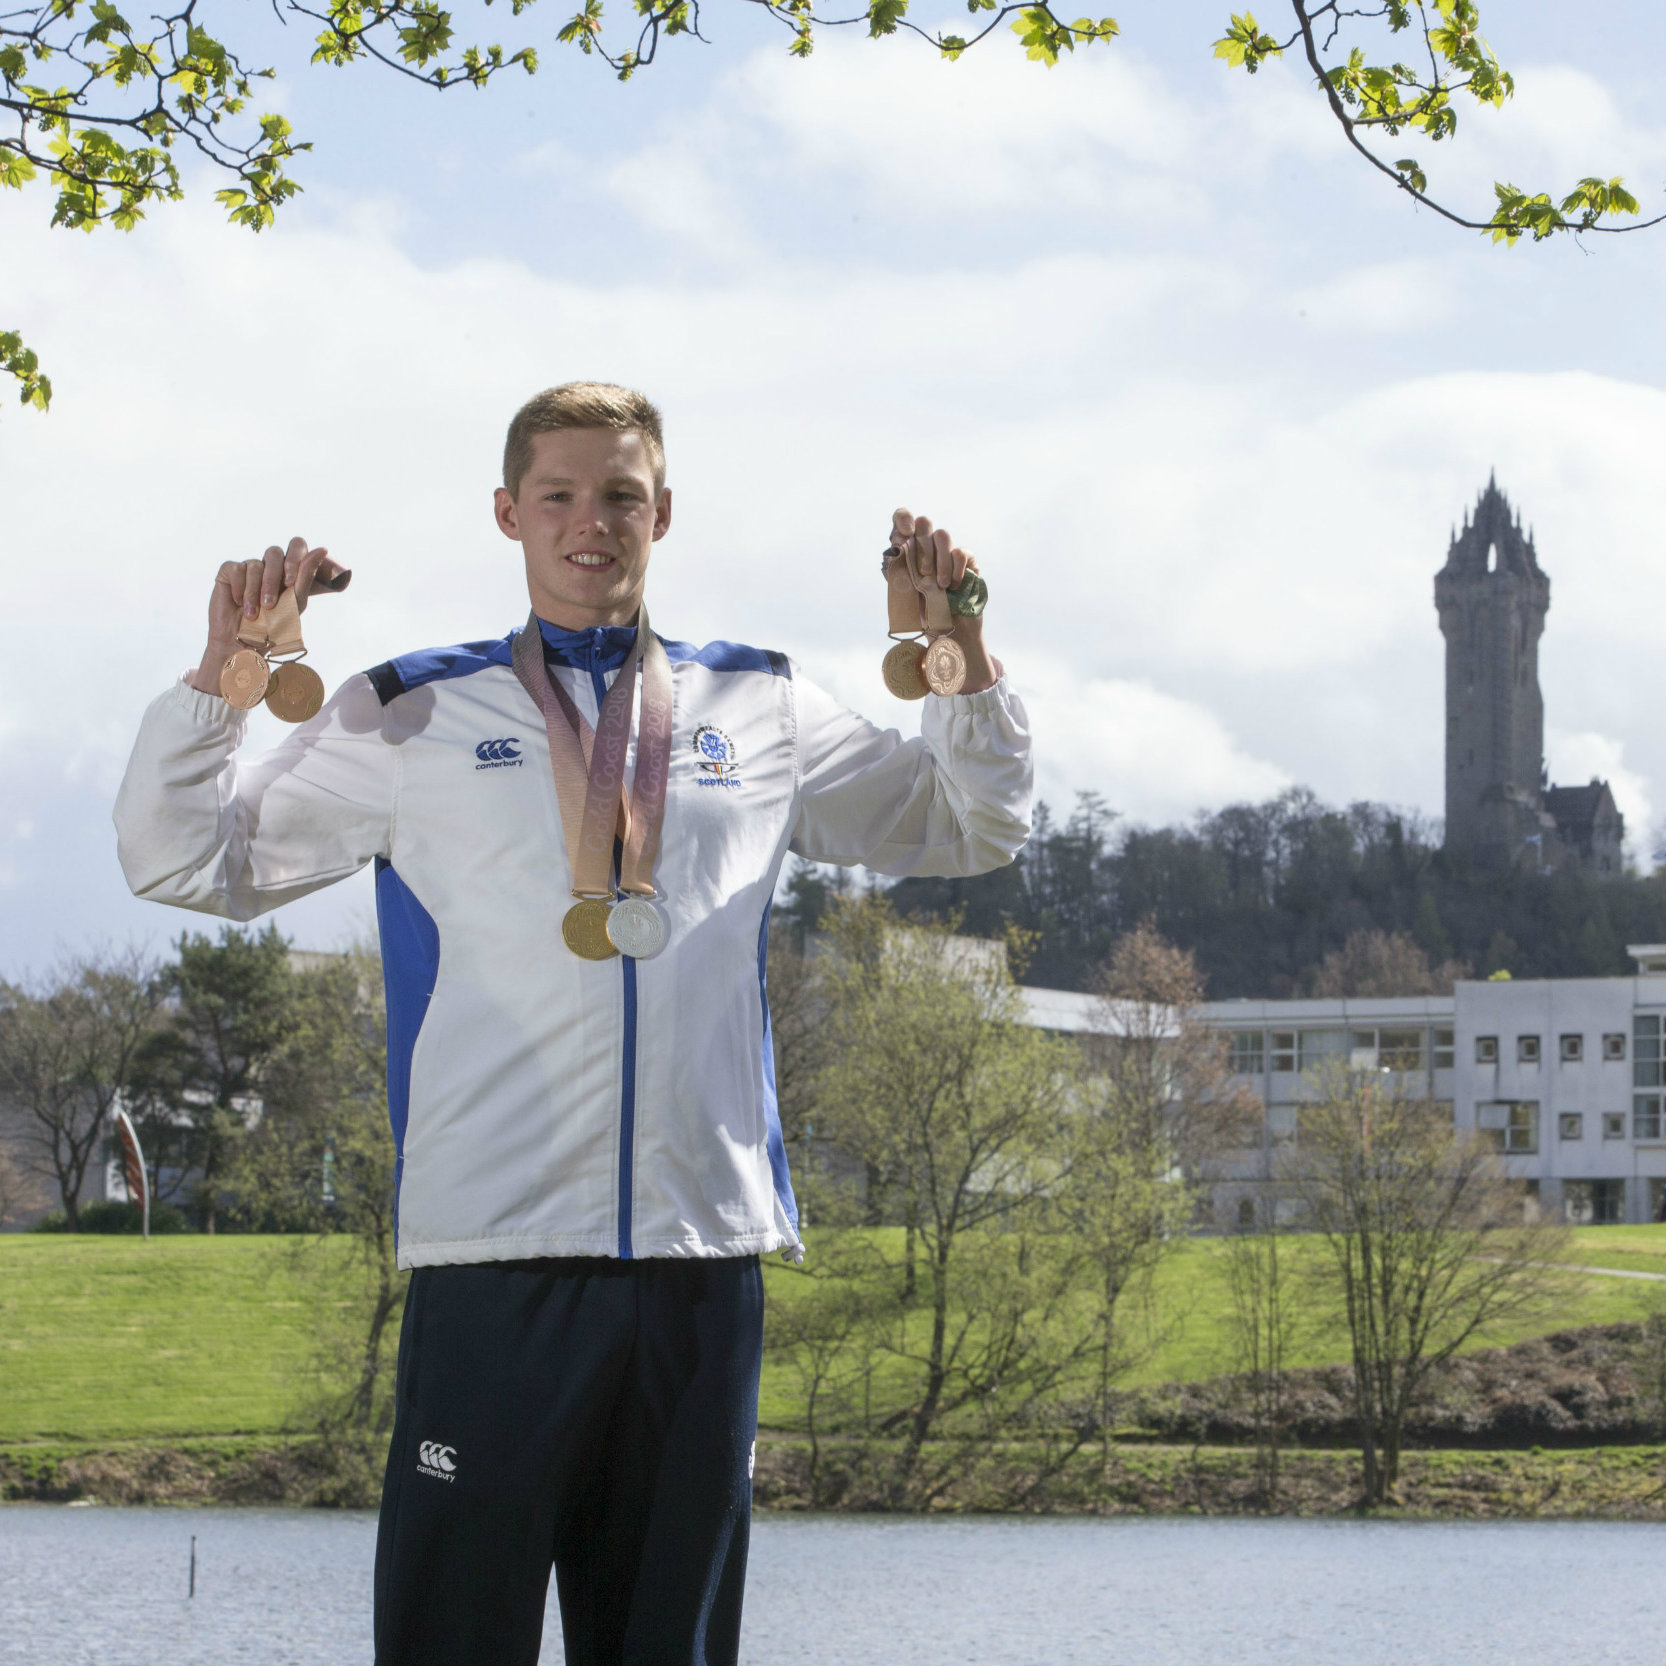 University of Stirling swimmer, Duncan Scott, brought home six medals from the G